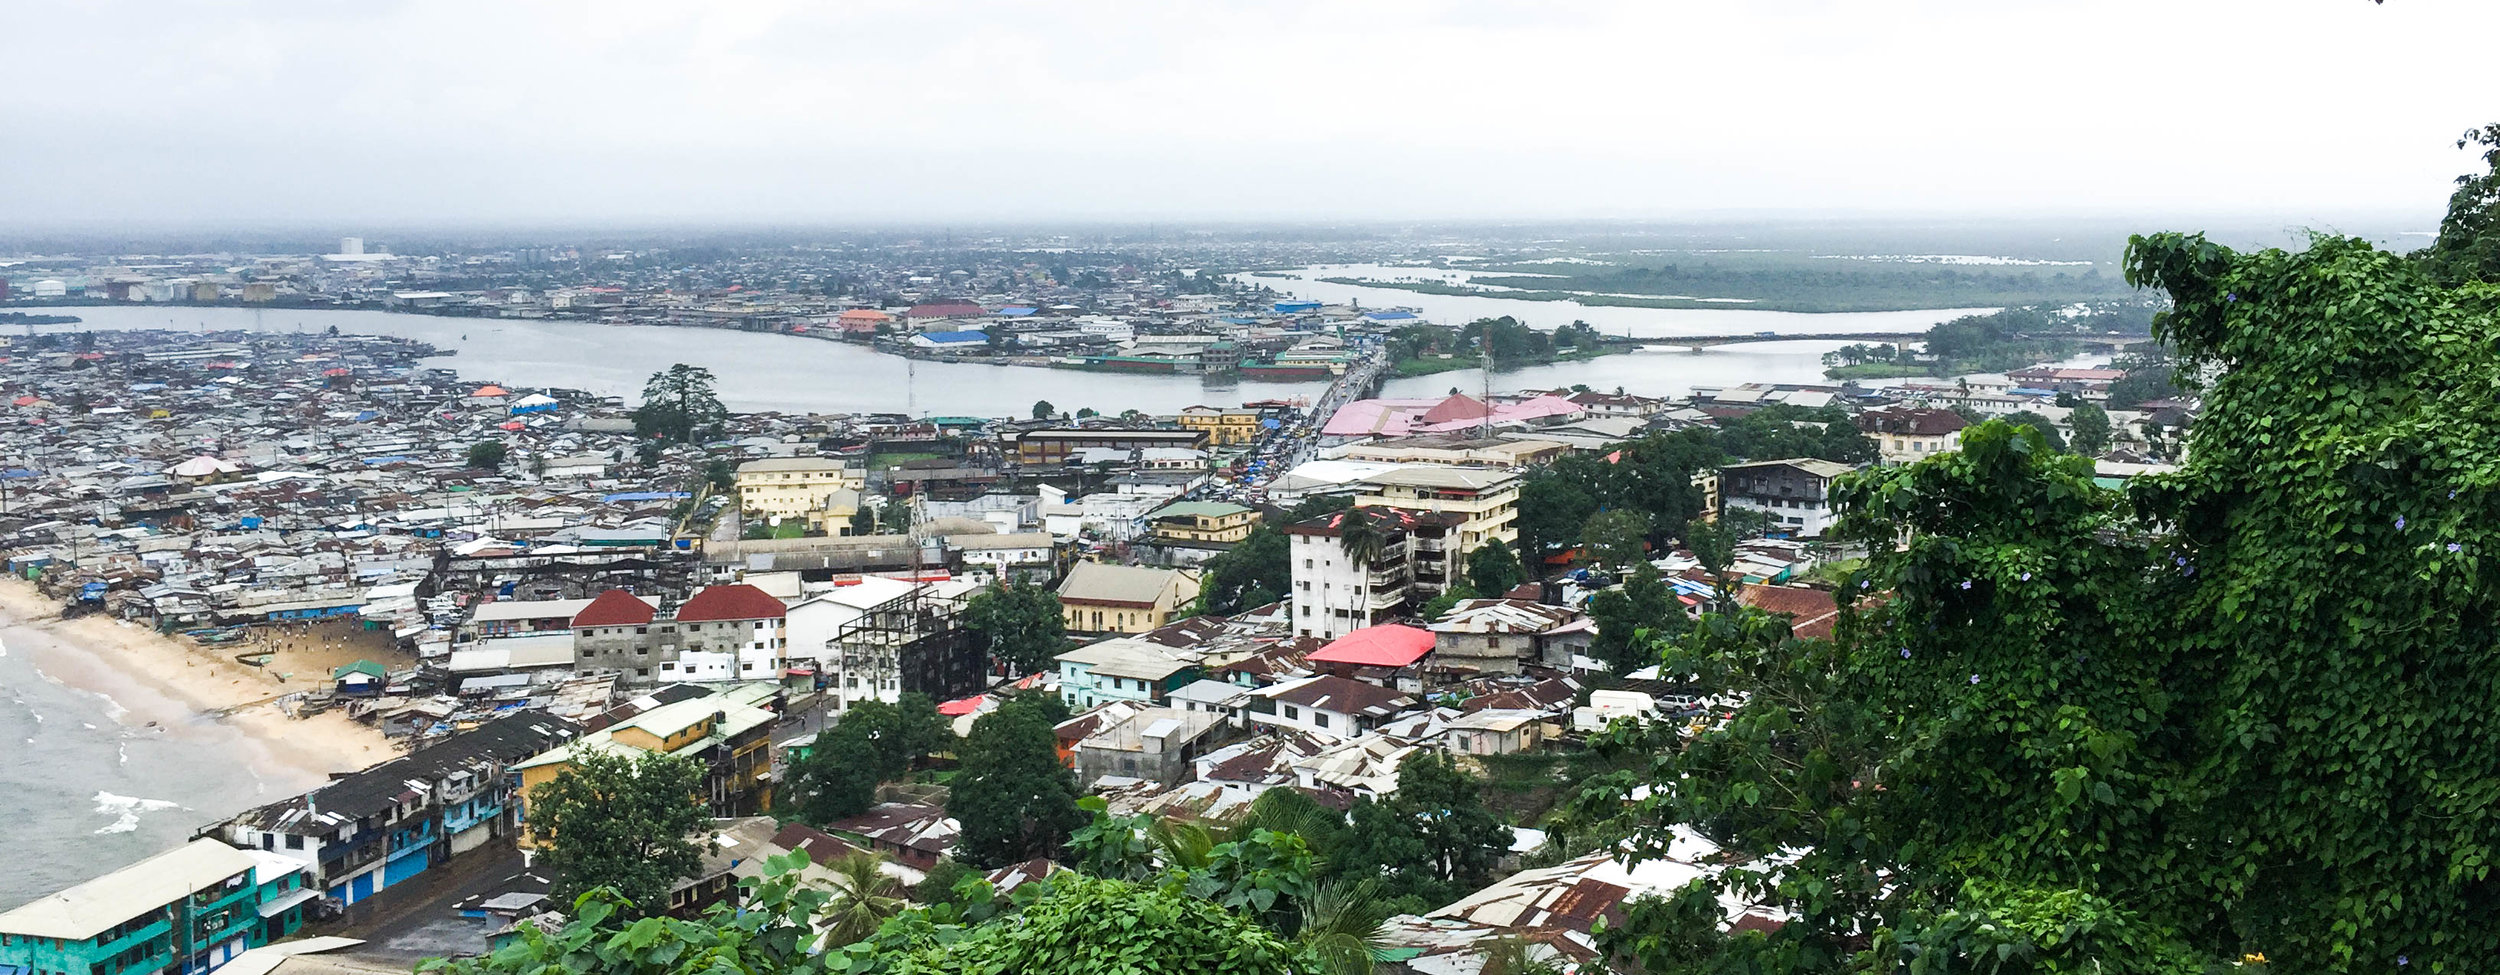 Overlooking West Point from the Ducor hotel ruins, Liberia